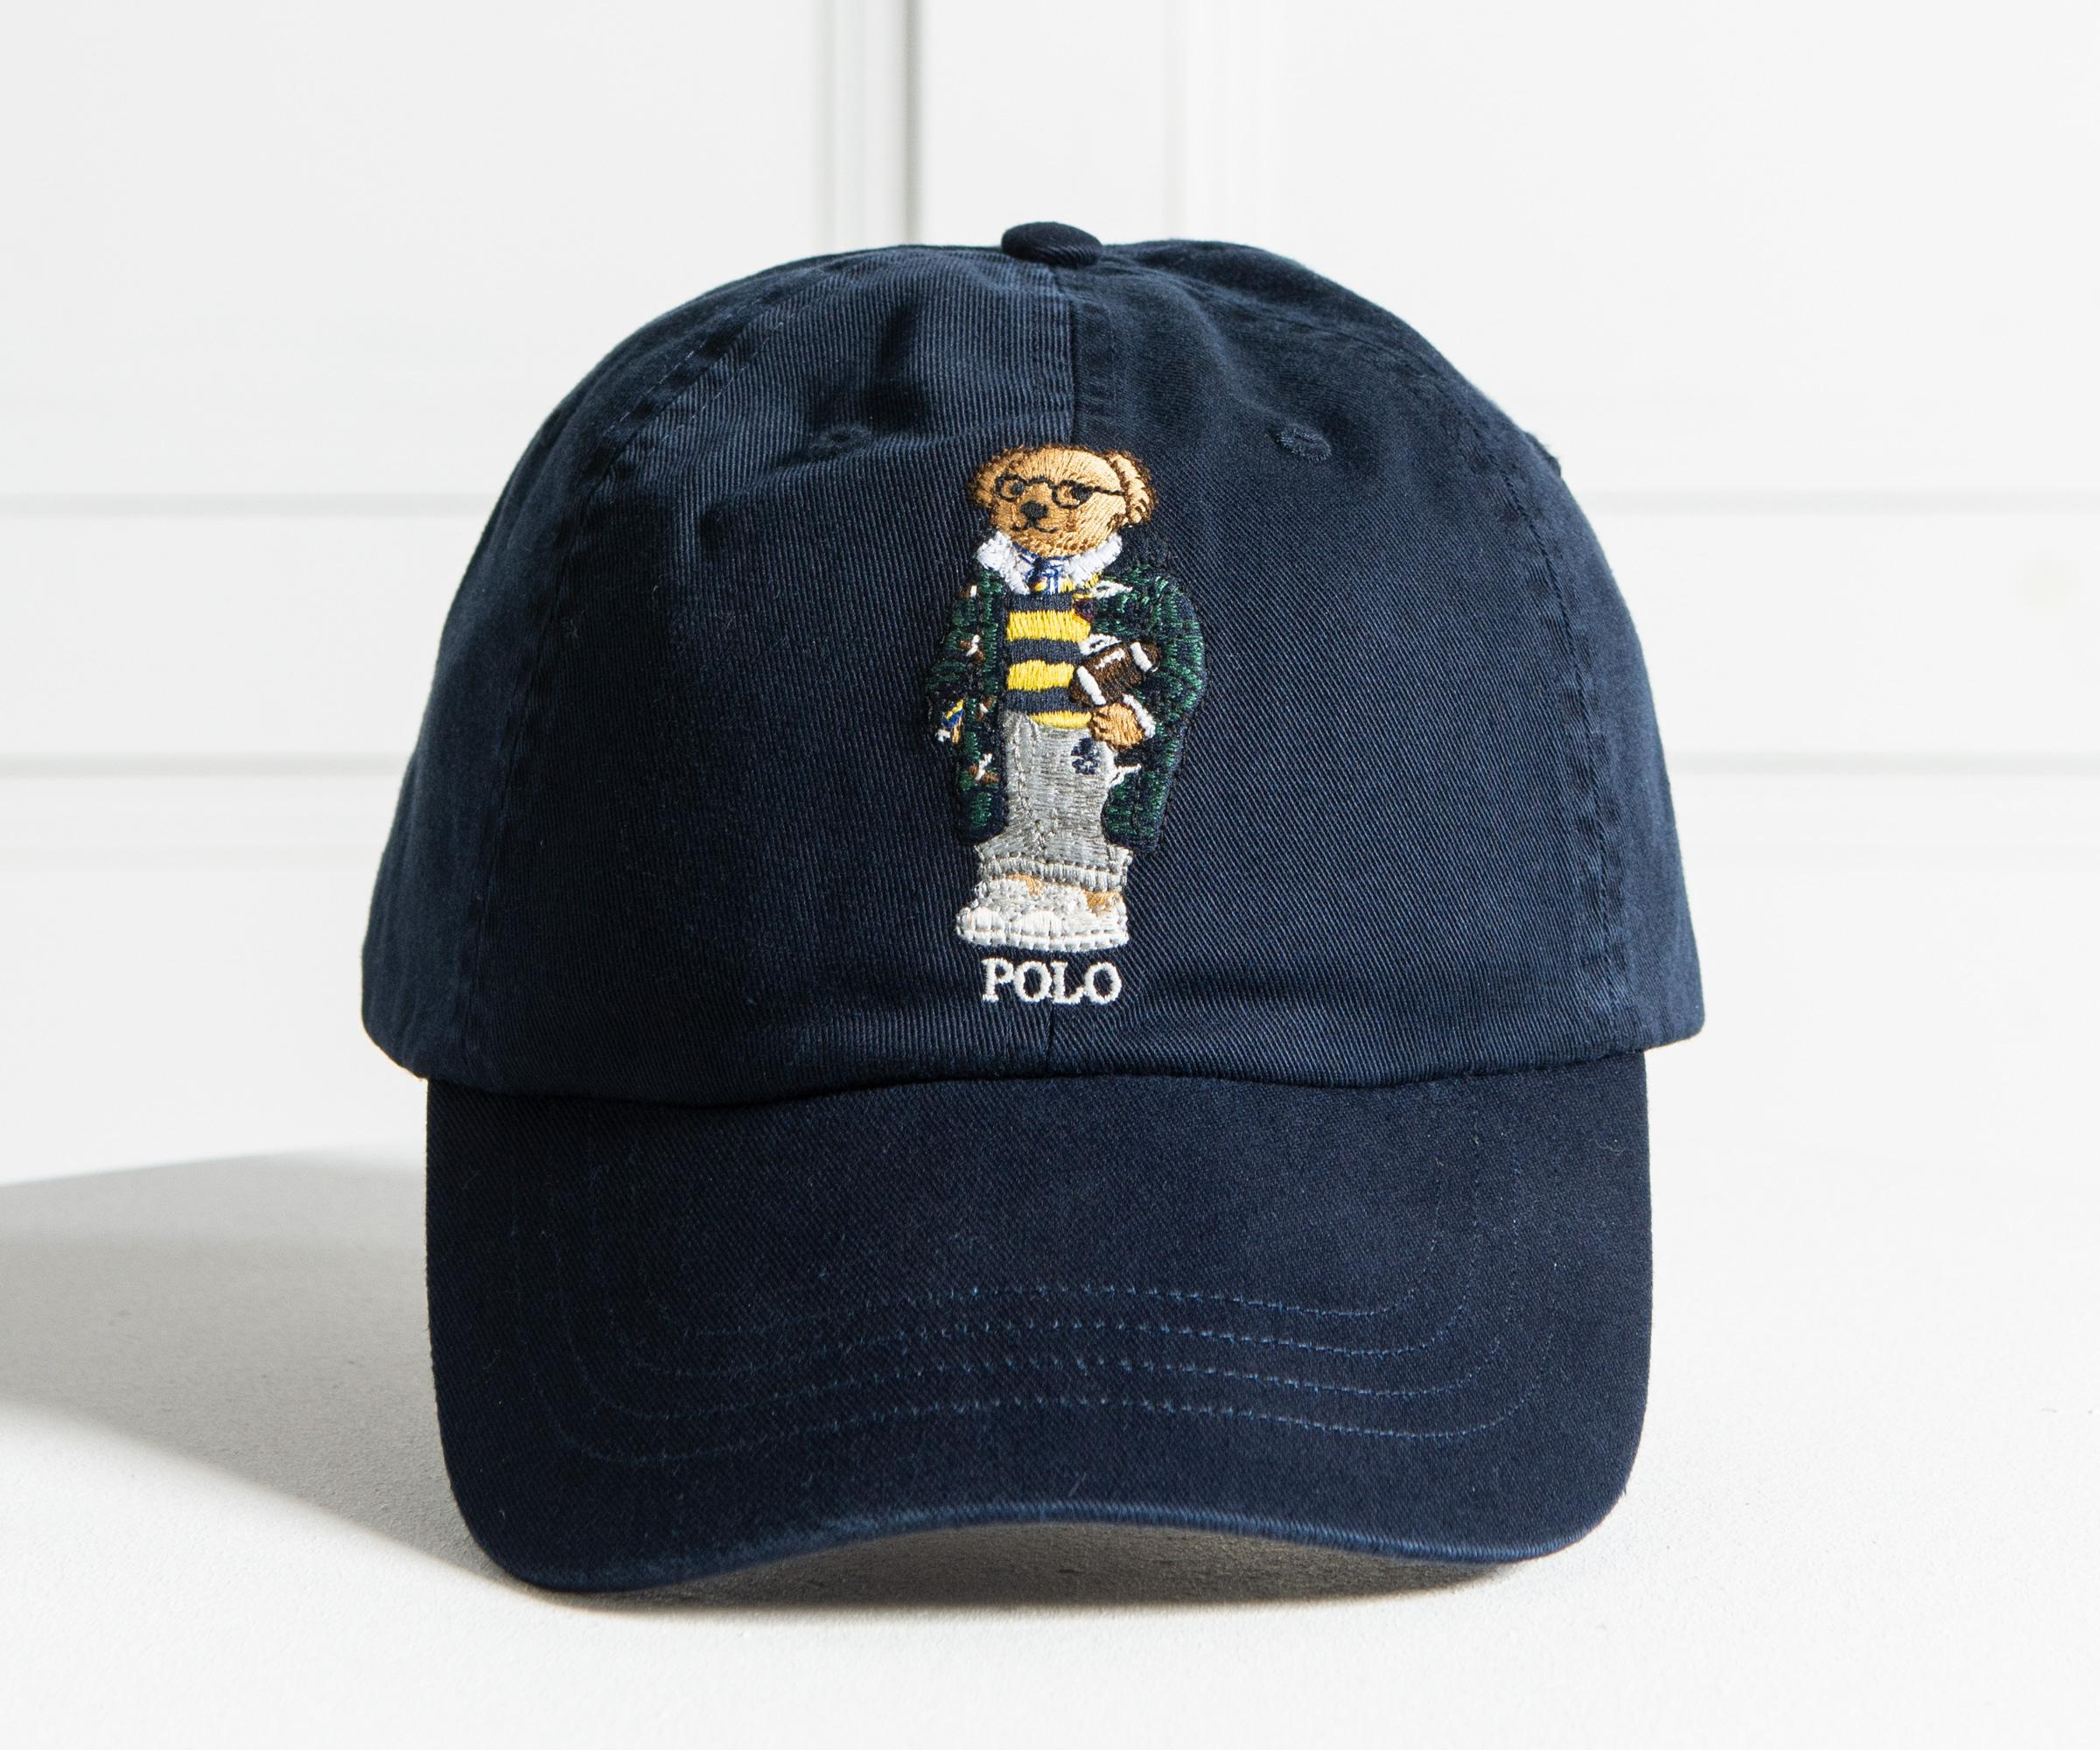 Lyst - Polo Ralph Lauren  polo Bear  Cap Navy in Blue for Men 81d2d80df2ec